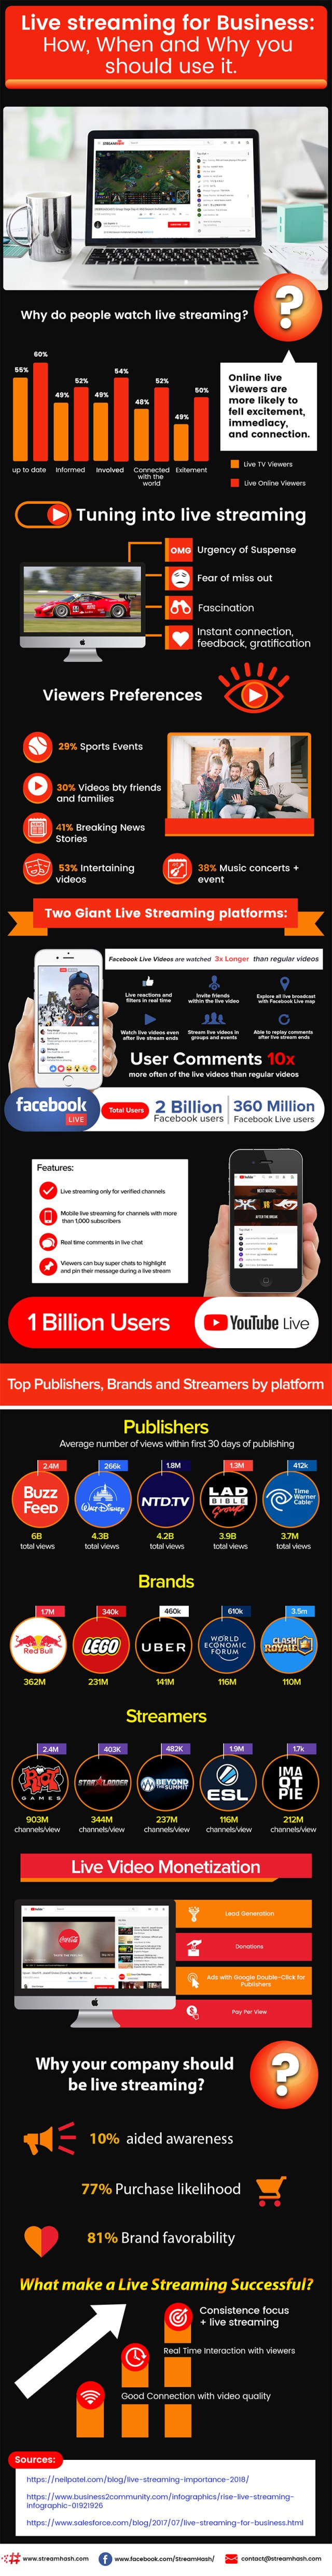 Adding Live Streaming To Your Social Marketing Mix